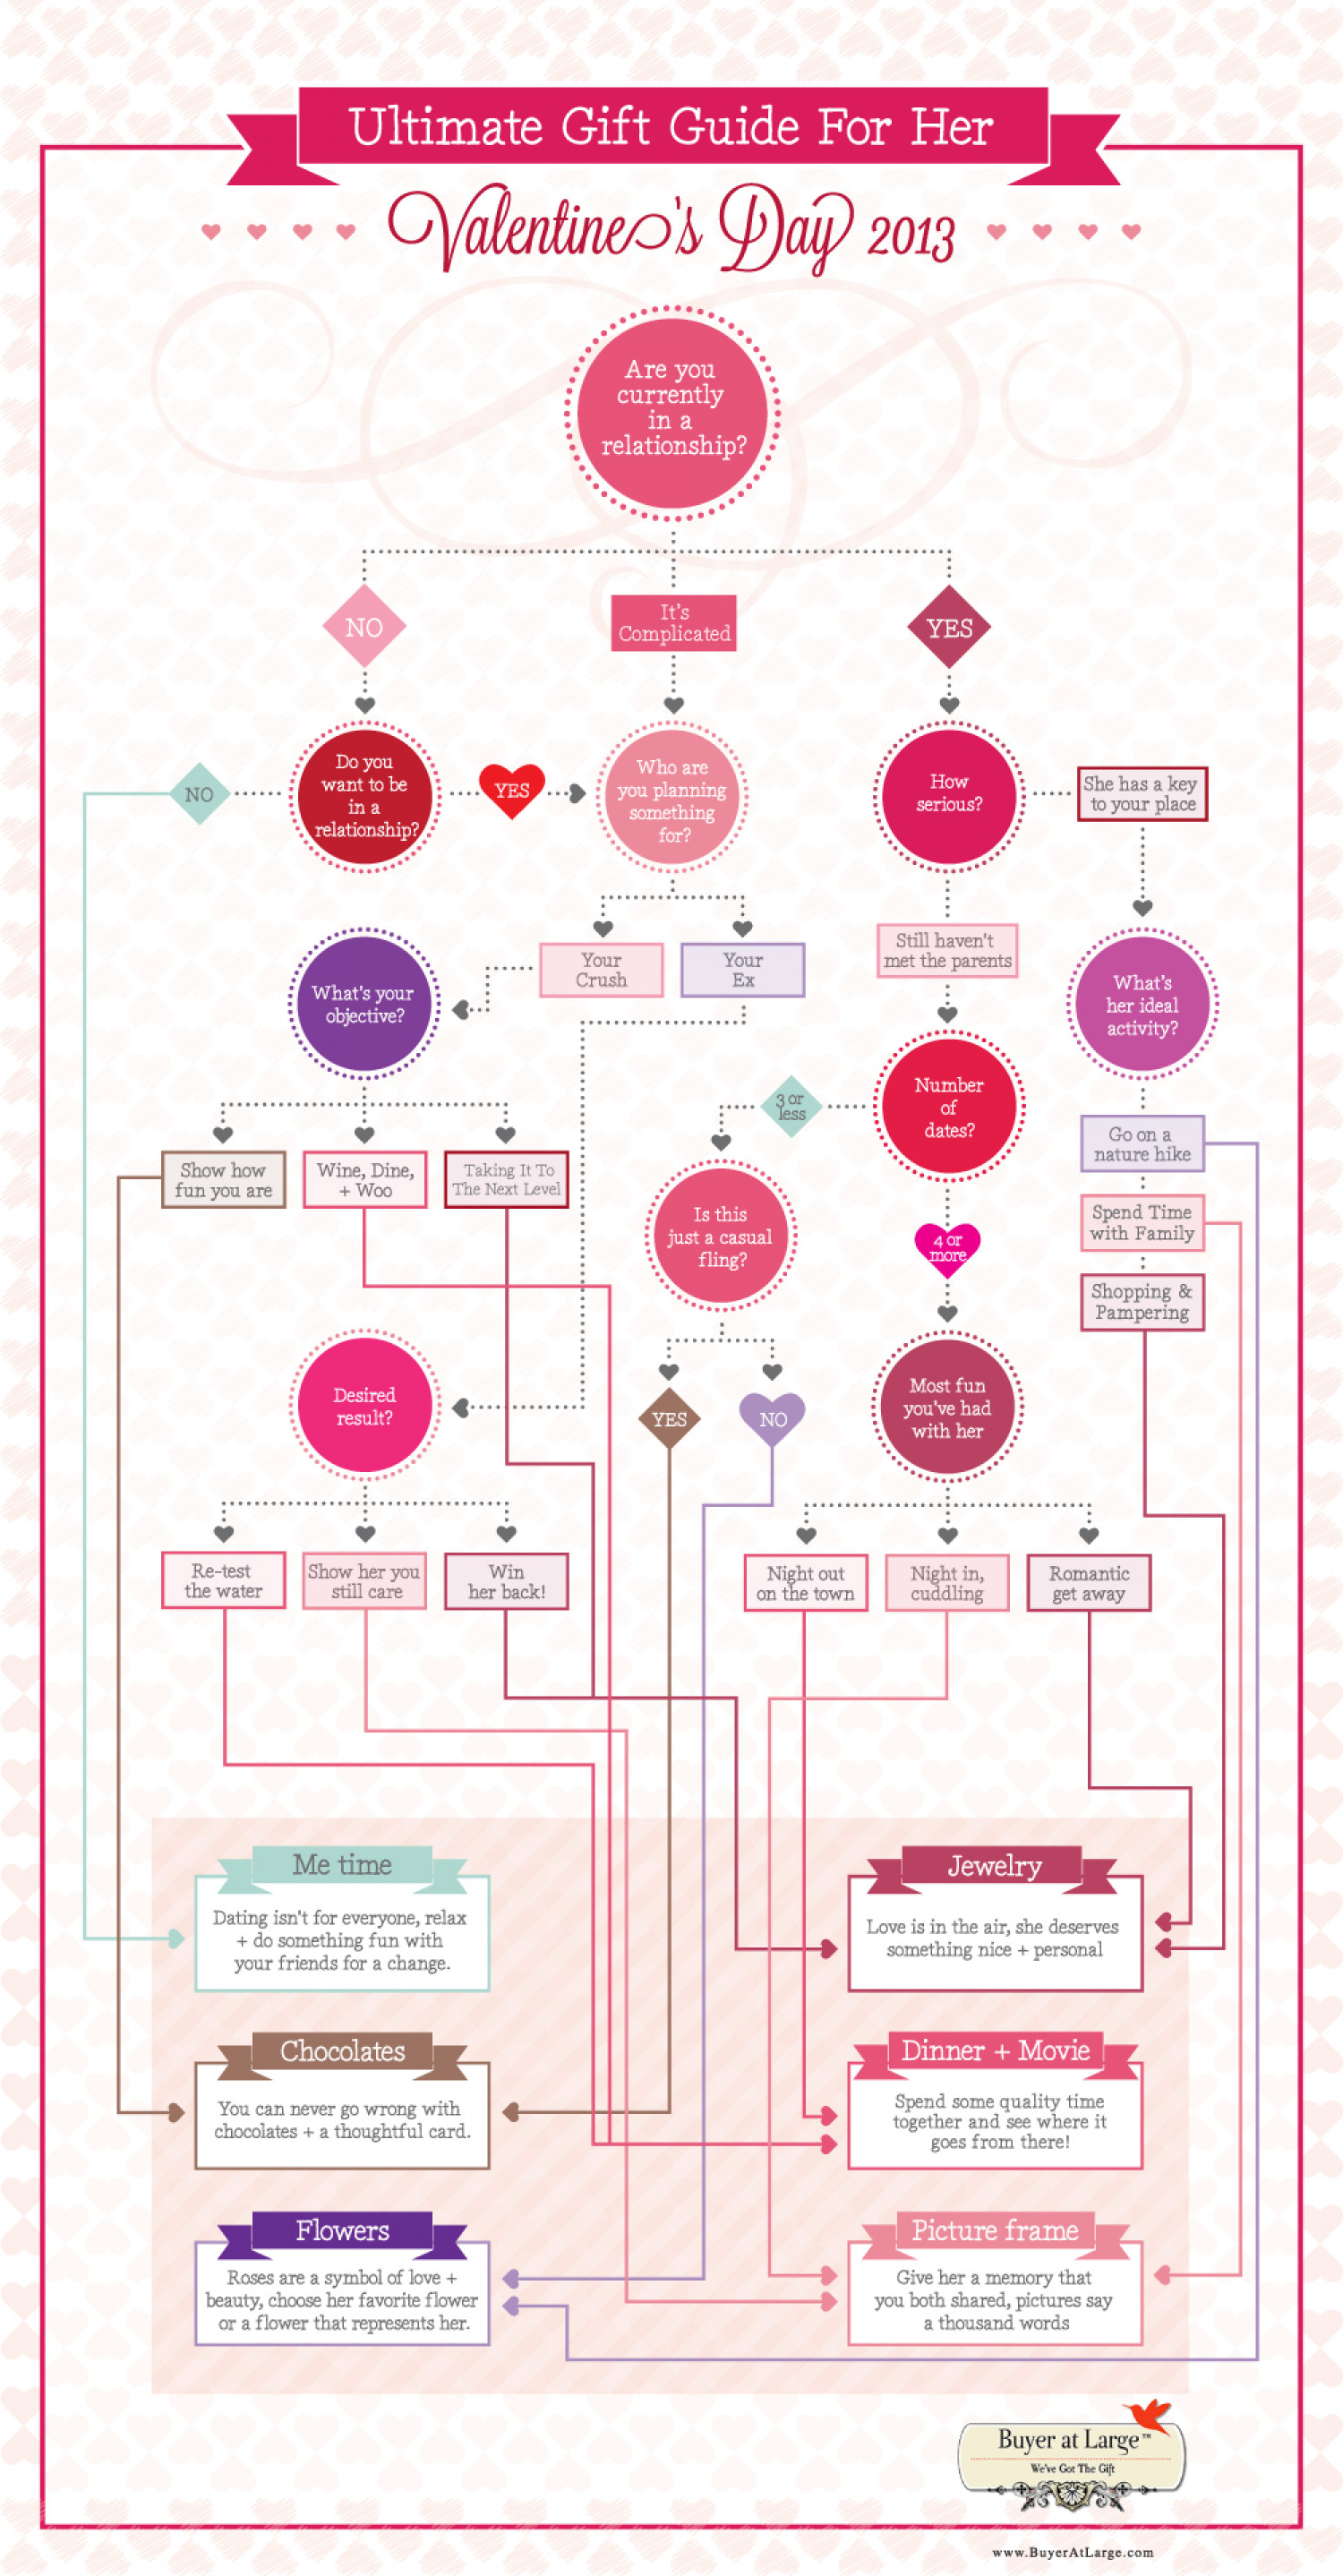 Valentine's Day 2013 - Ultimate Gift Guide for Her Infographic